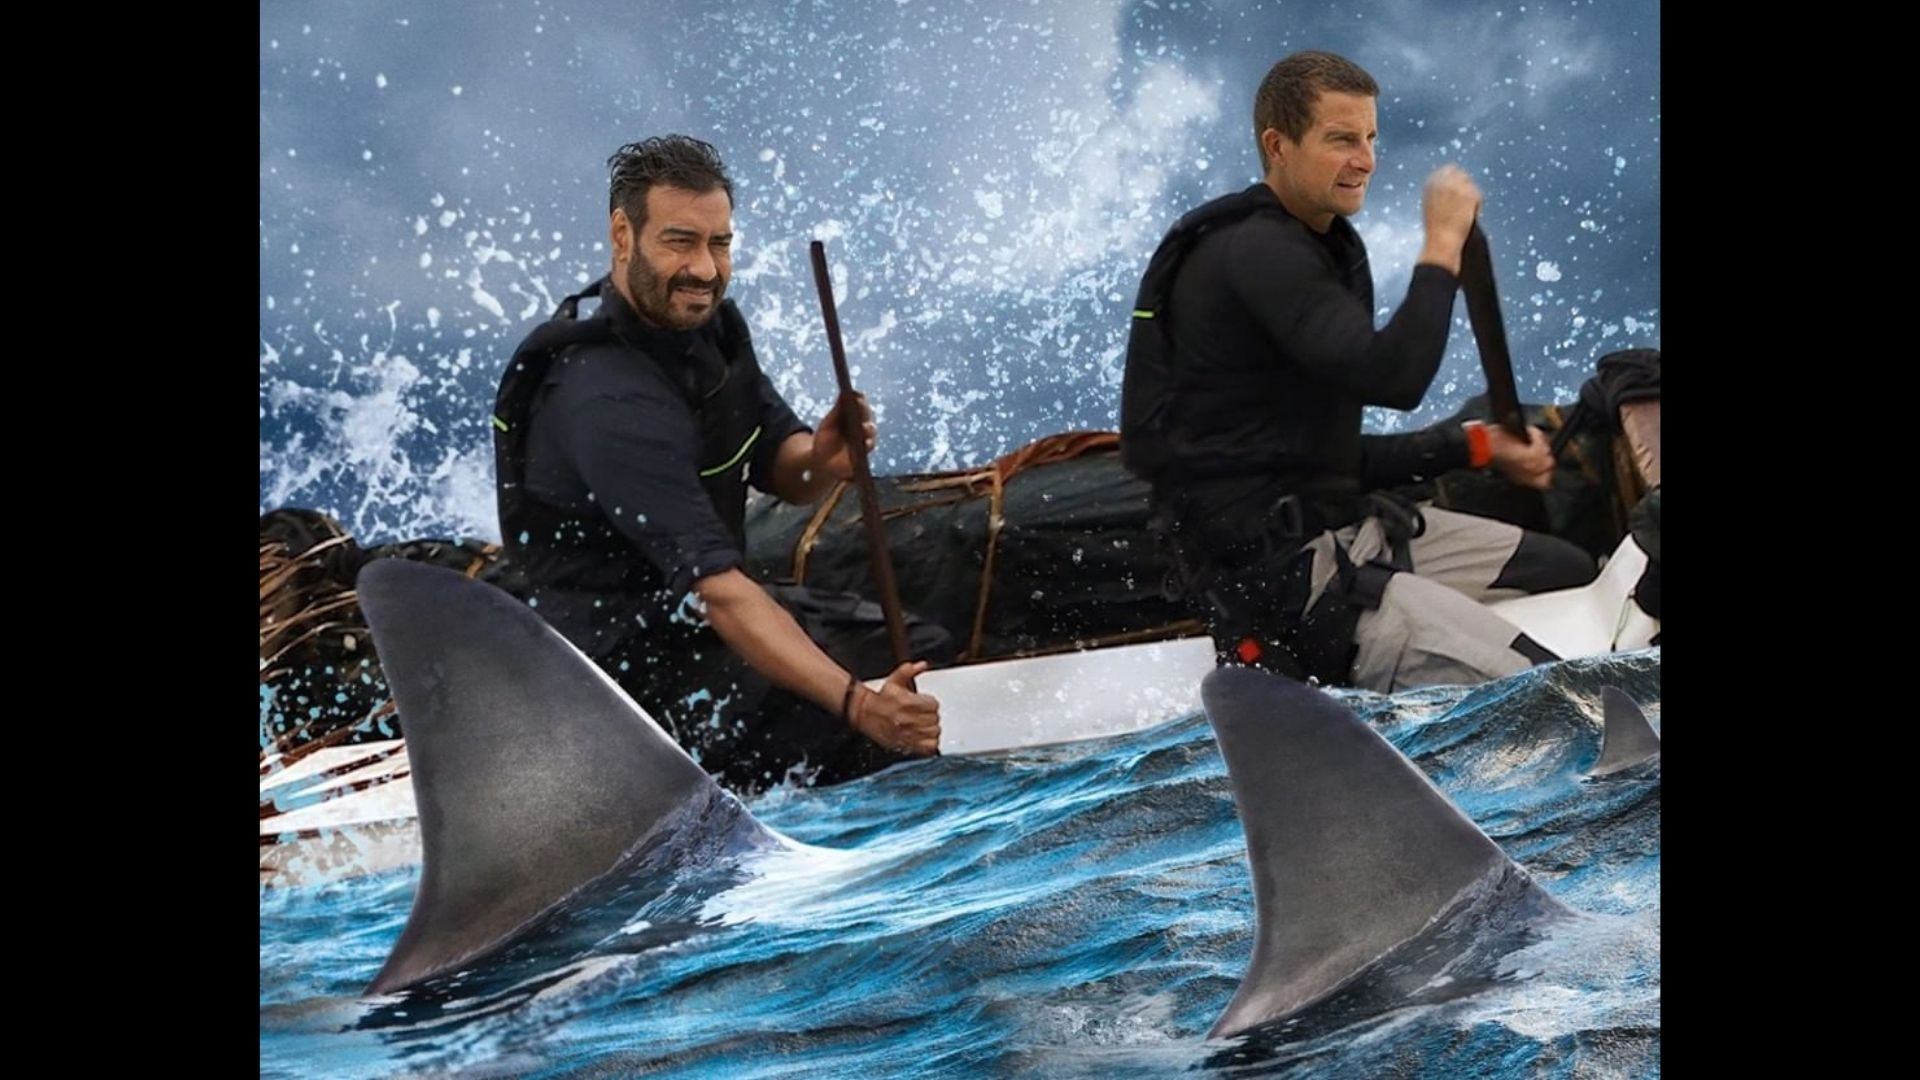 Into The Wild With Bear Grylls Trailer: Ajay Devgn Explores His Wild Side With Sharks And Dense Forest; Actor Makes A Catamaran With Grylls